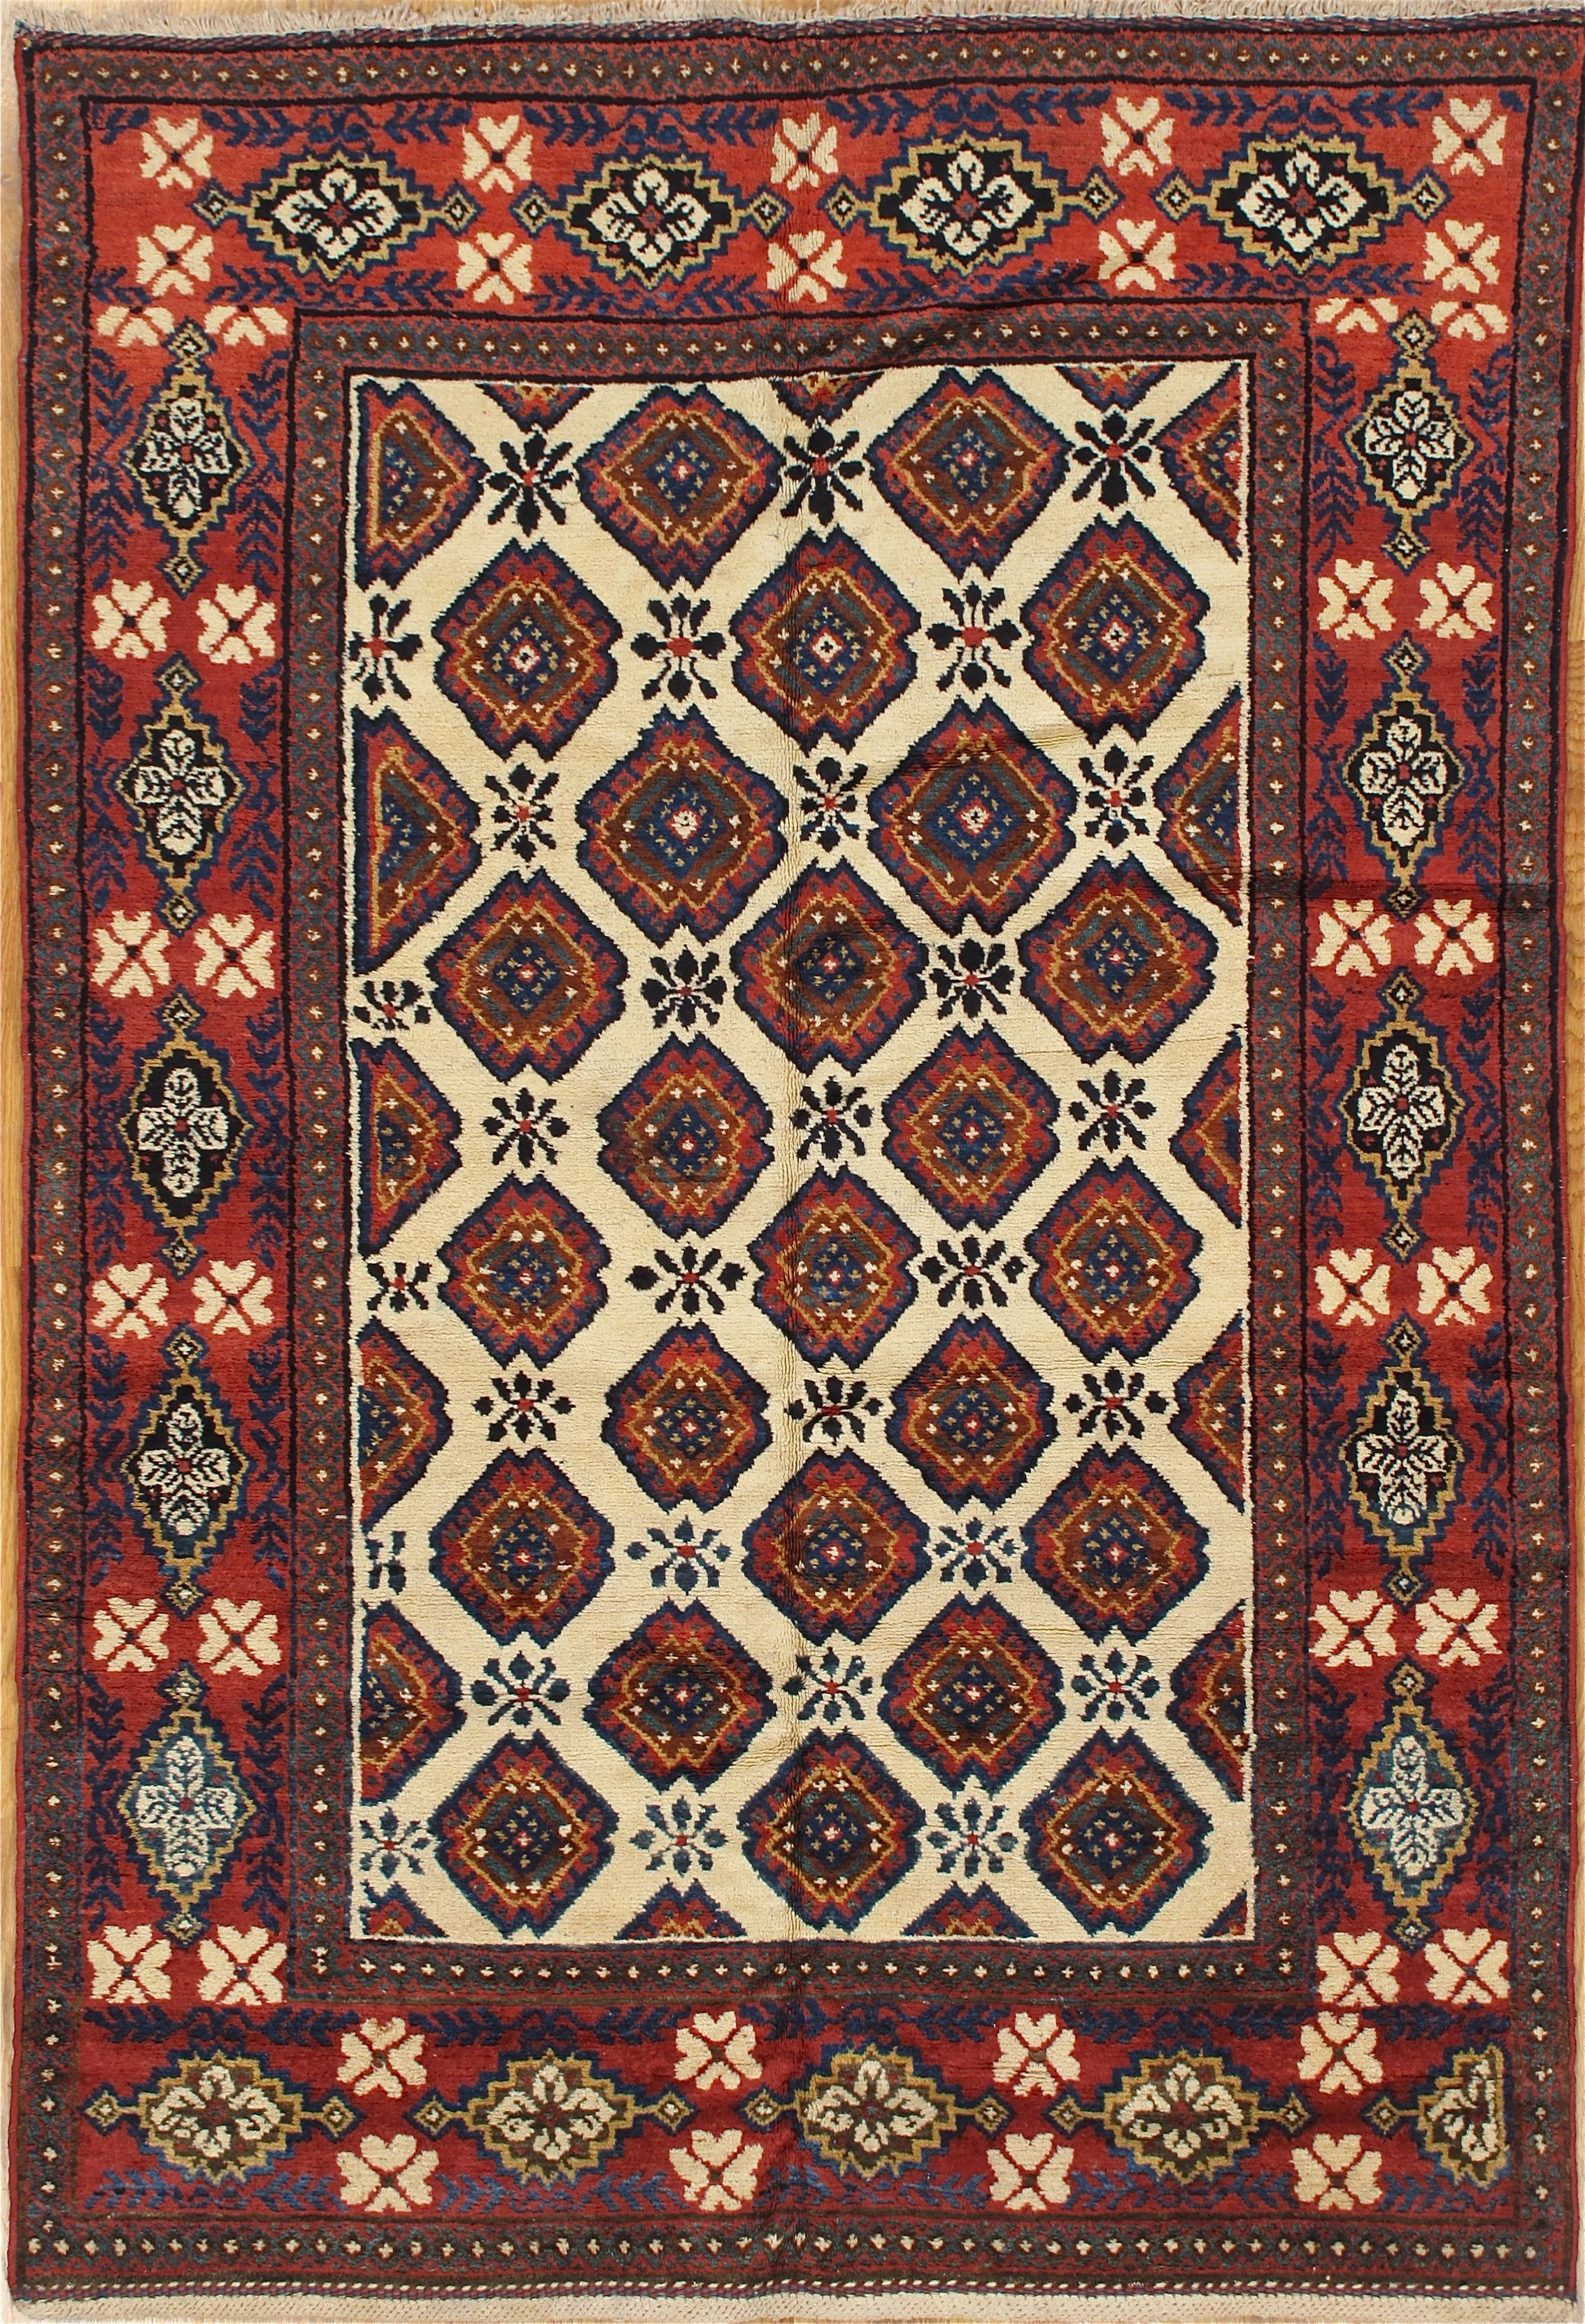 Afshar Rug From South East Iran Age Circa 1920 Size 5 9 X3 11 175x119 Cm Follow Fosterginger Pinterest For More Pin Antique Rugs Rugs Rugs On Carpet